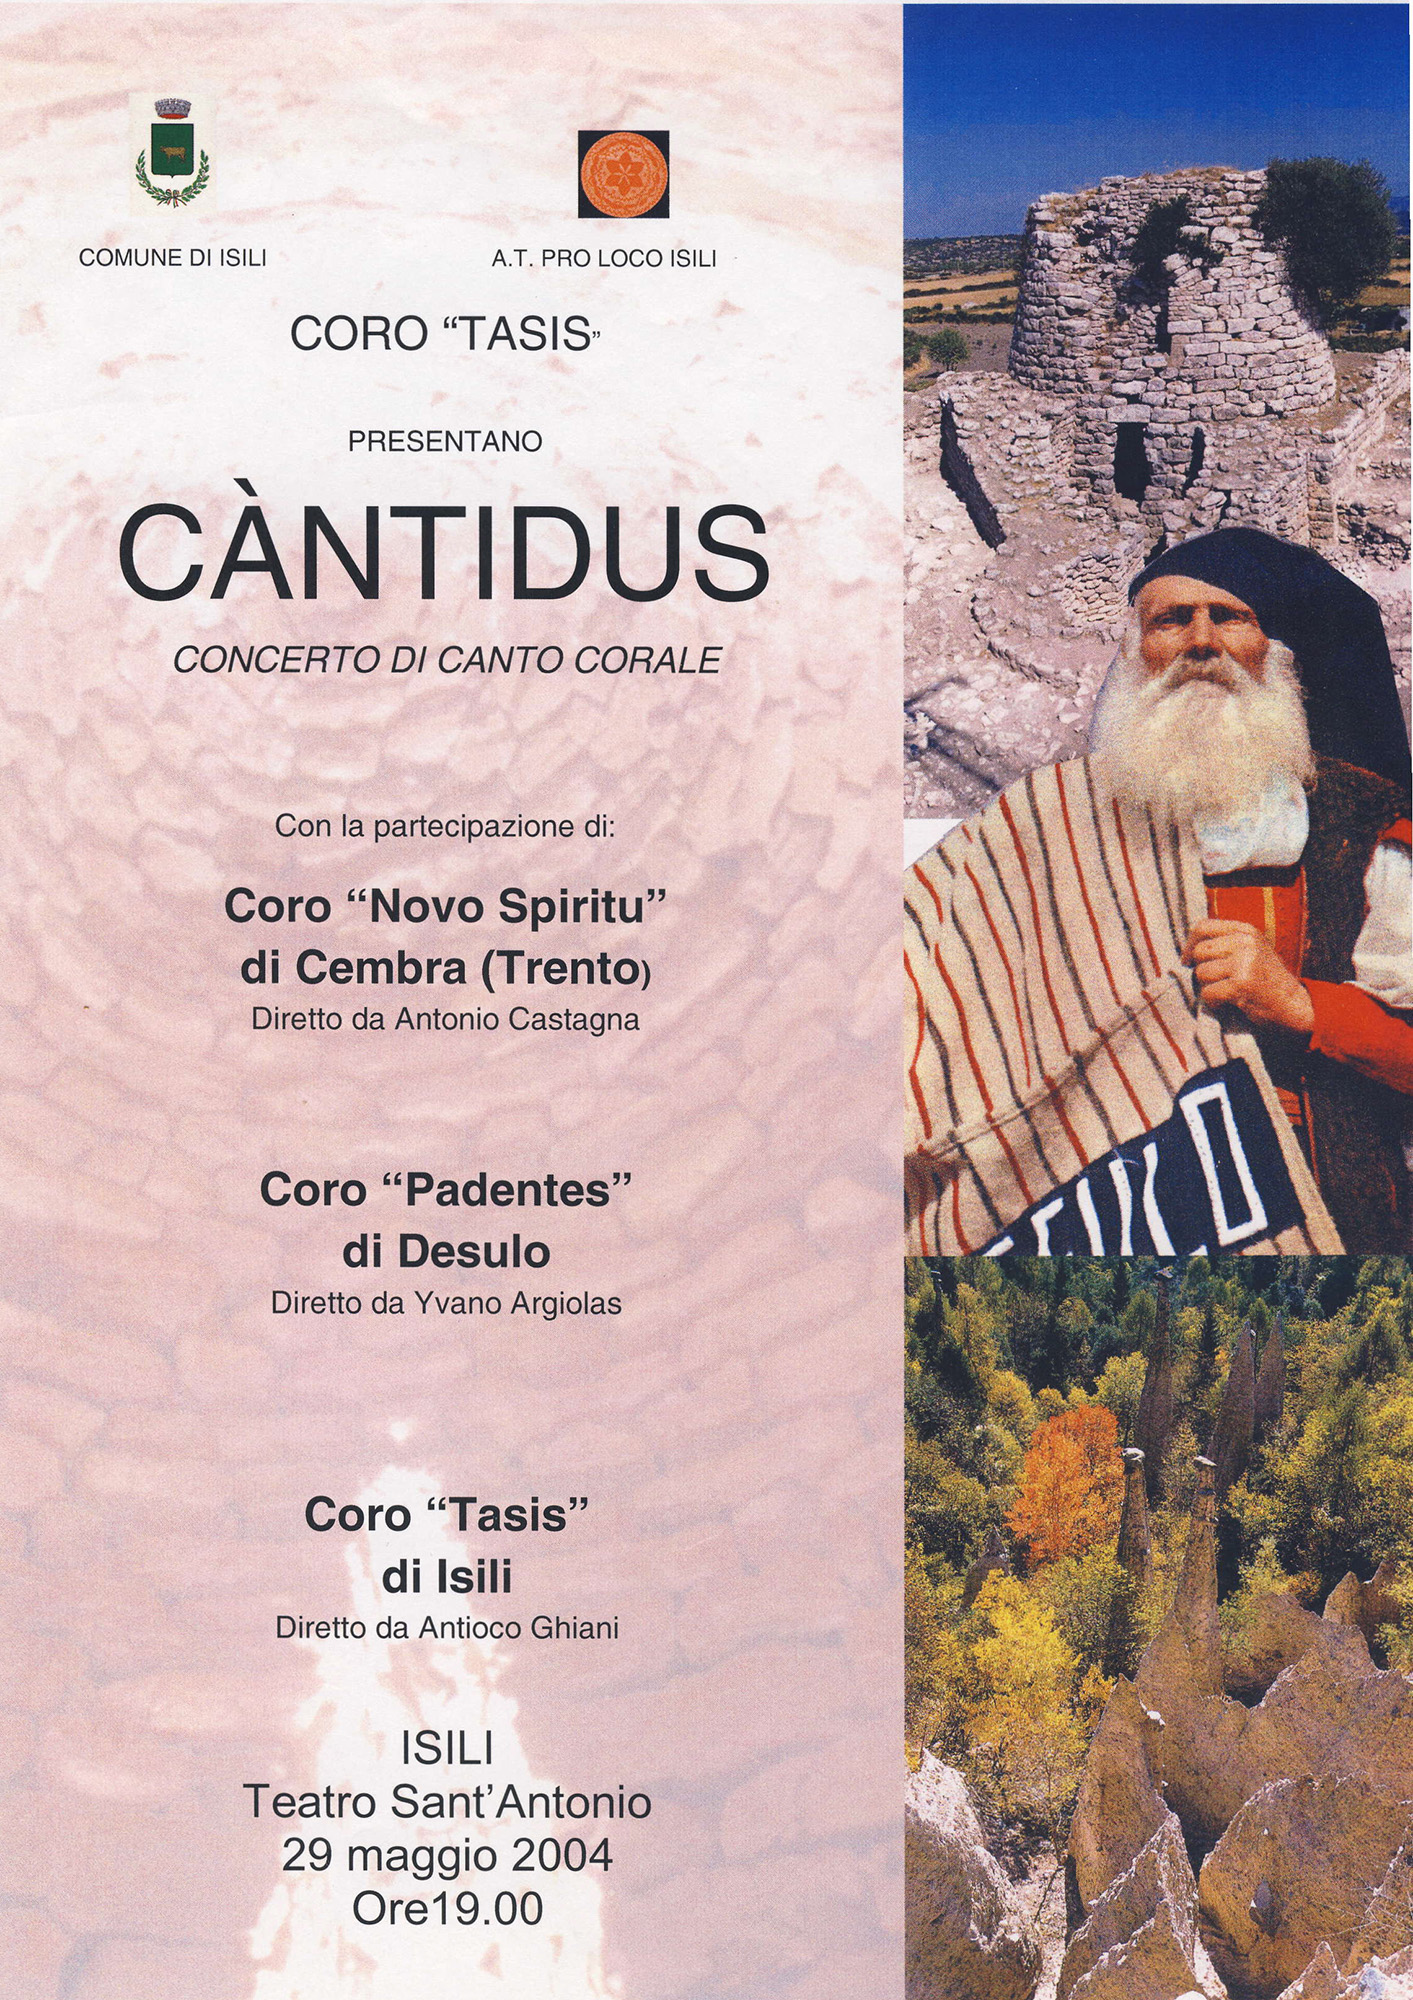 Cantidus 2004